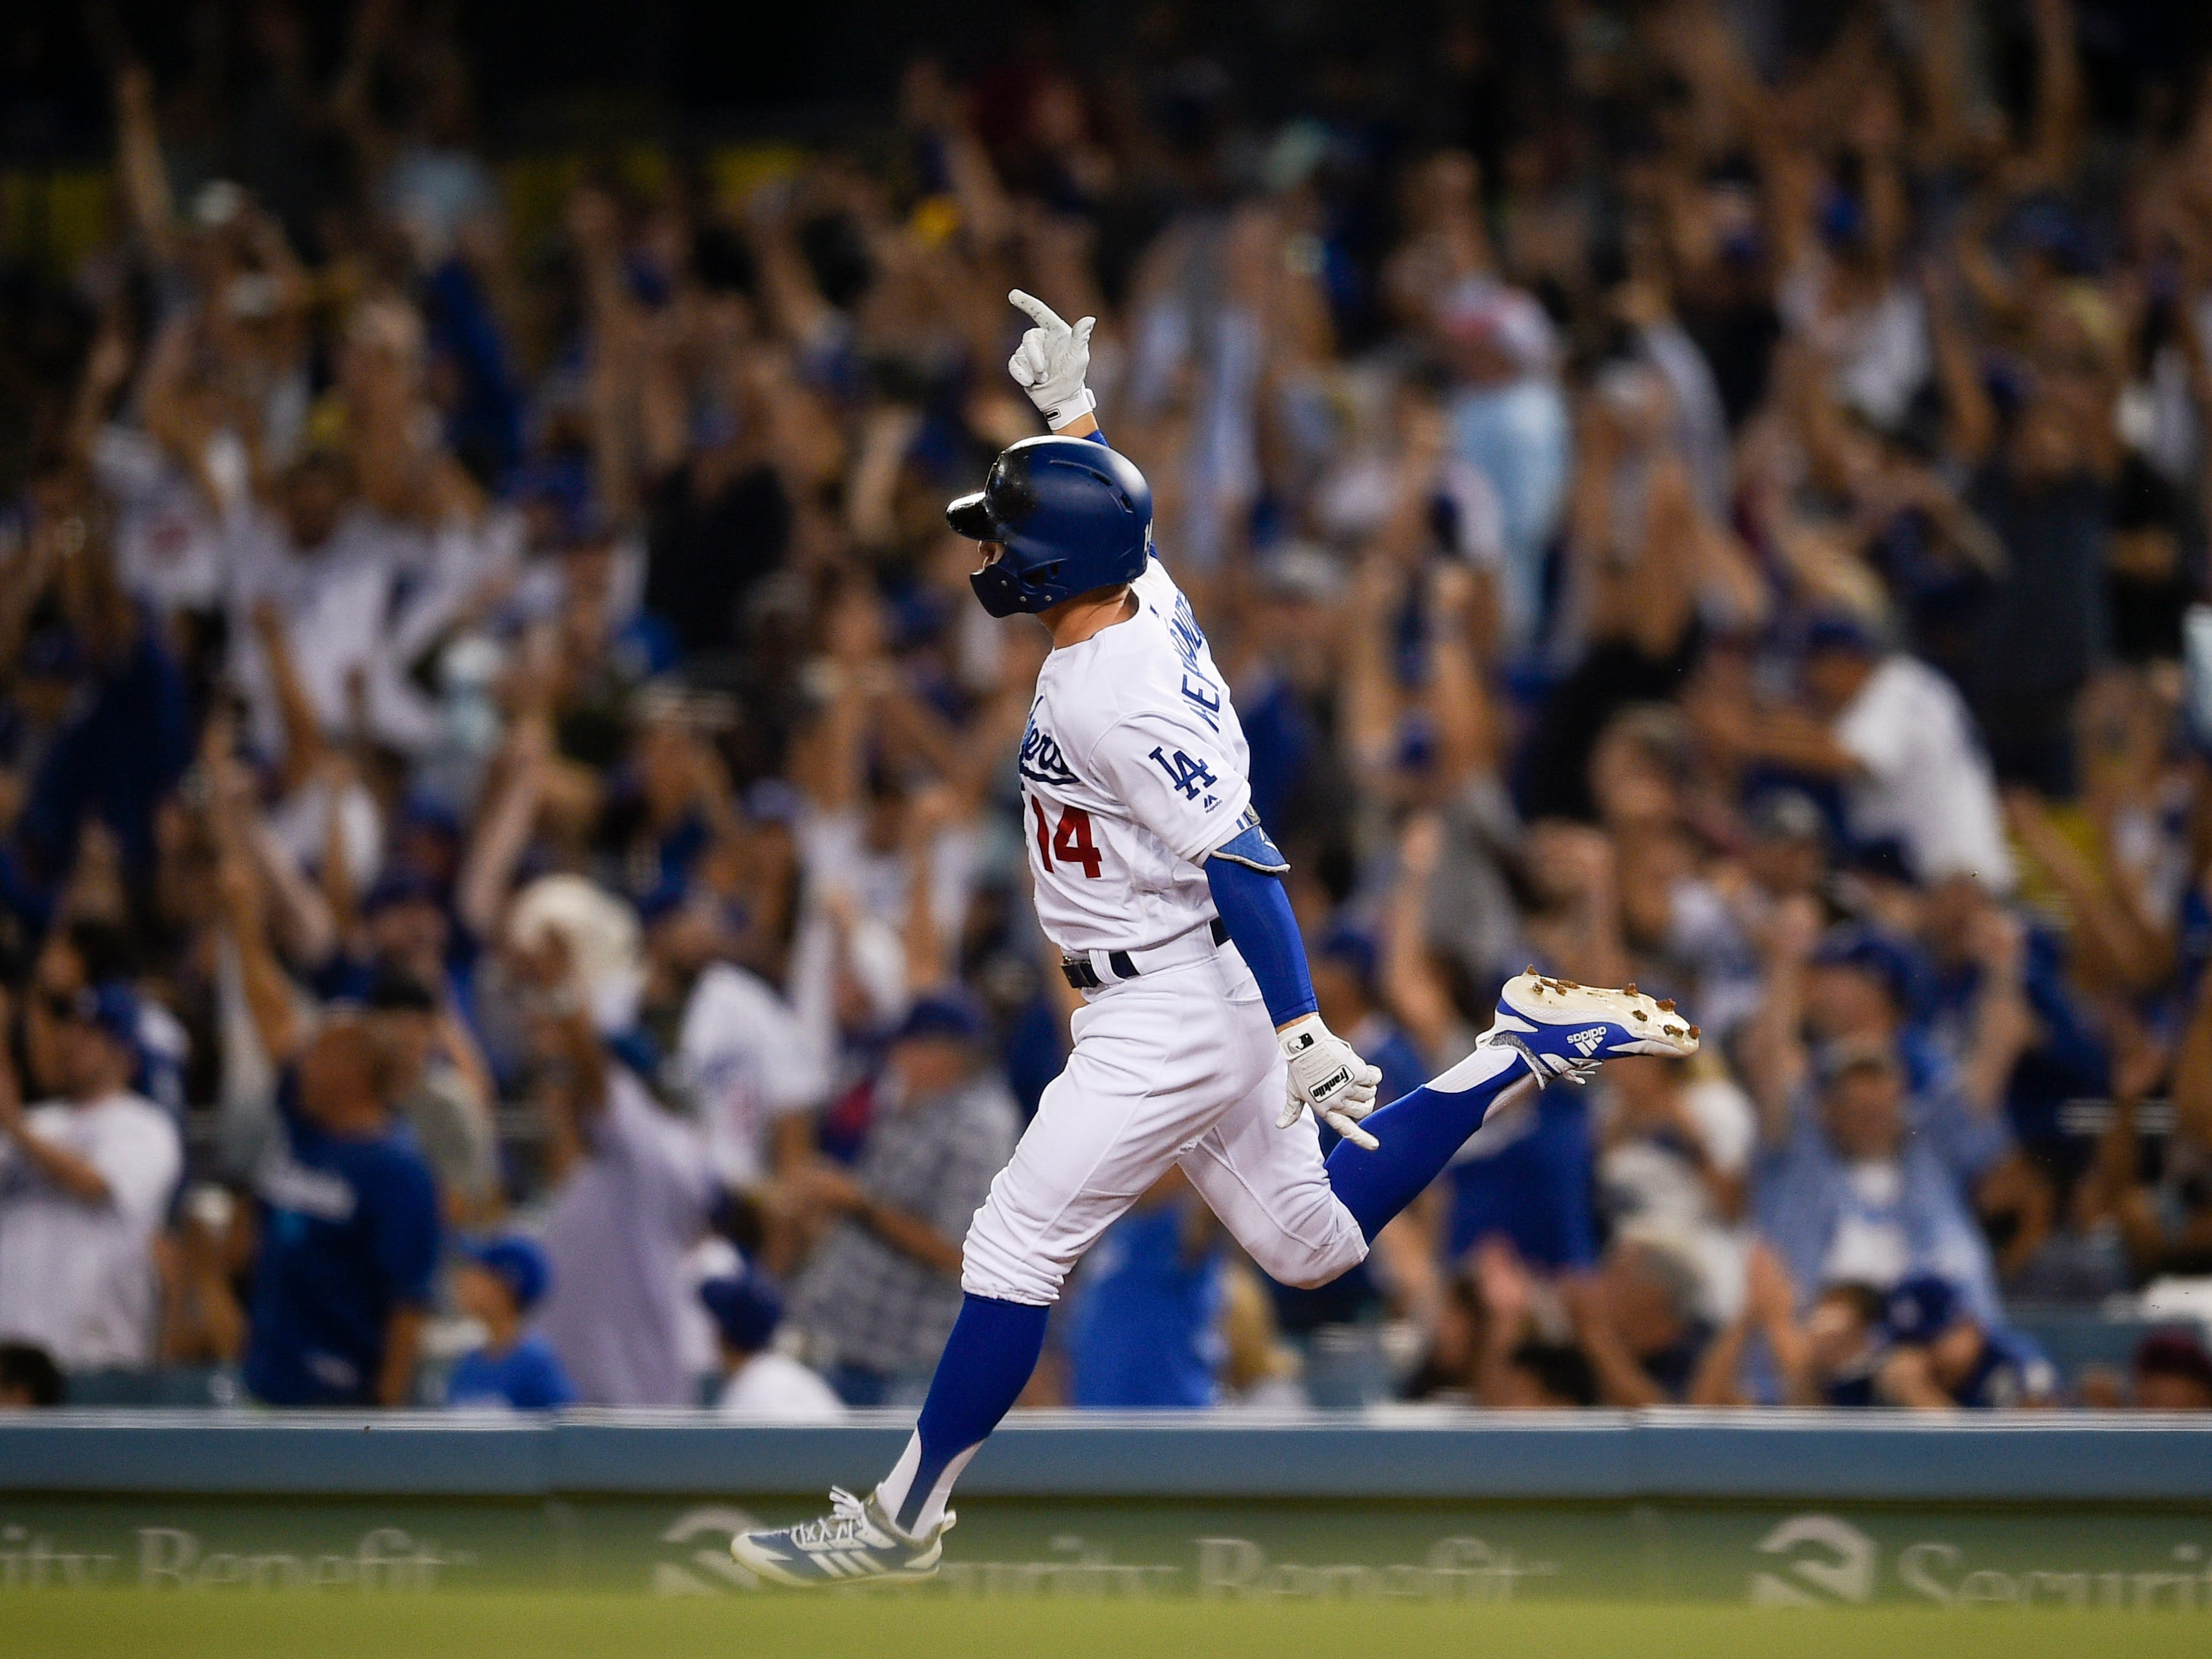 Aug 31, 2018: Los Angeles Dodgers pinch hitter Enrique Hernandez celebrates while rounding the bases after hitting the game tying solo home run during the seventh inning against the Arizona Diamondbacks at Dodger Stadium.